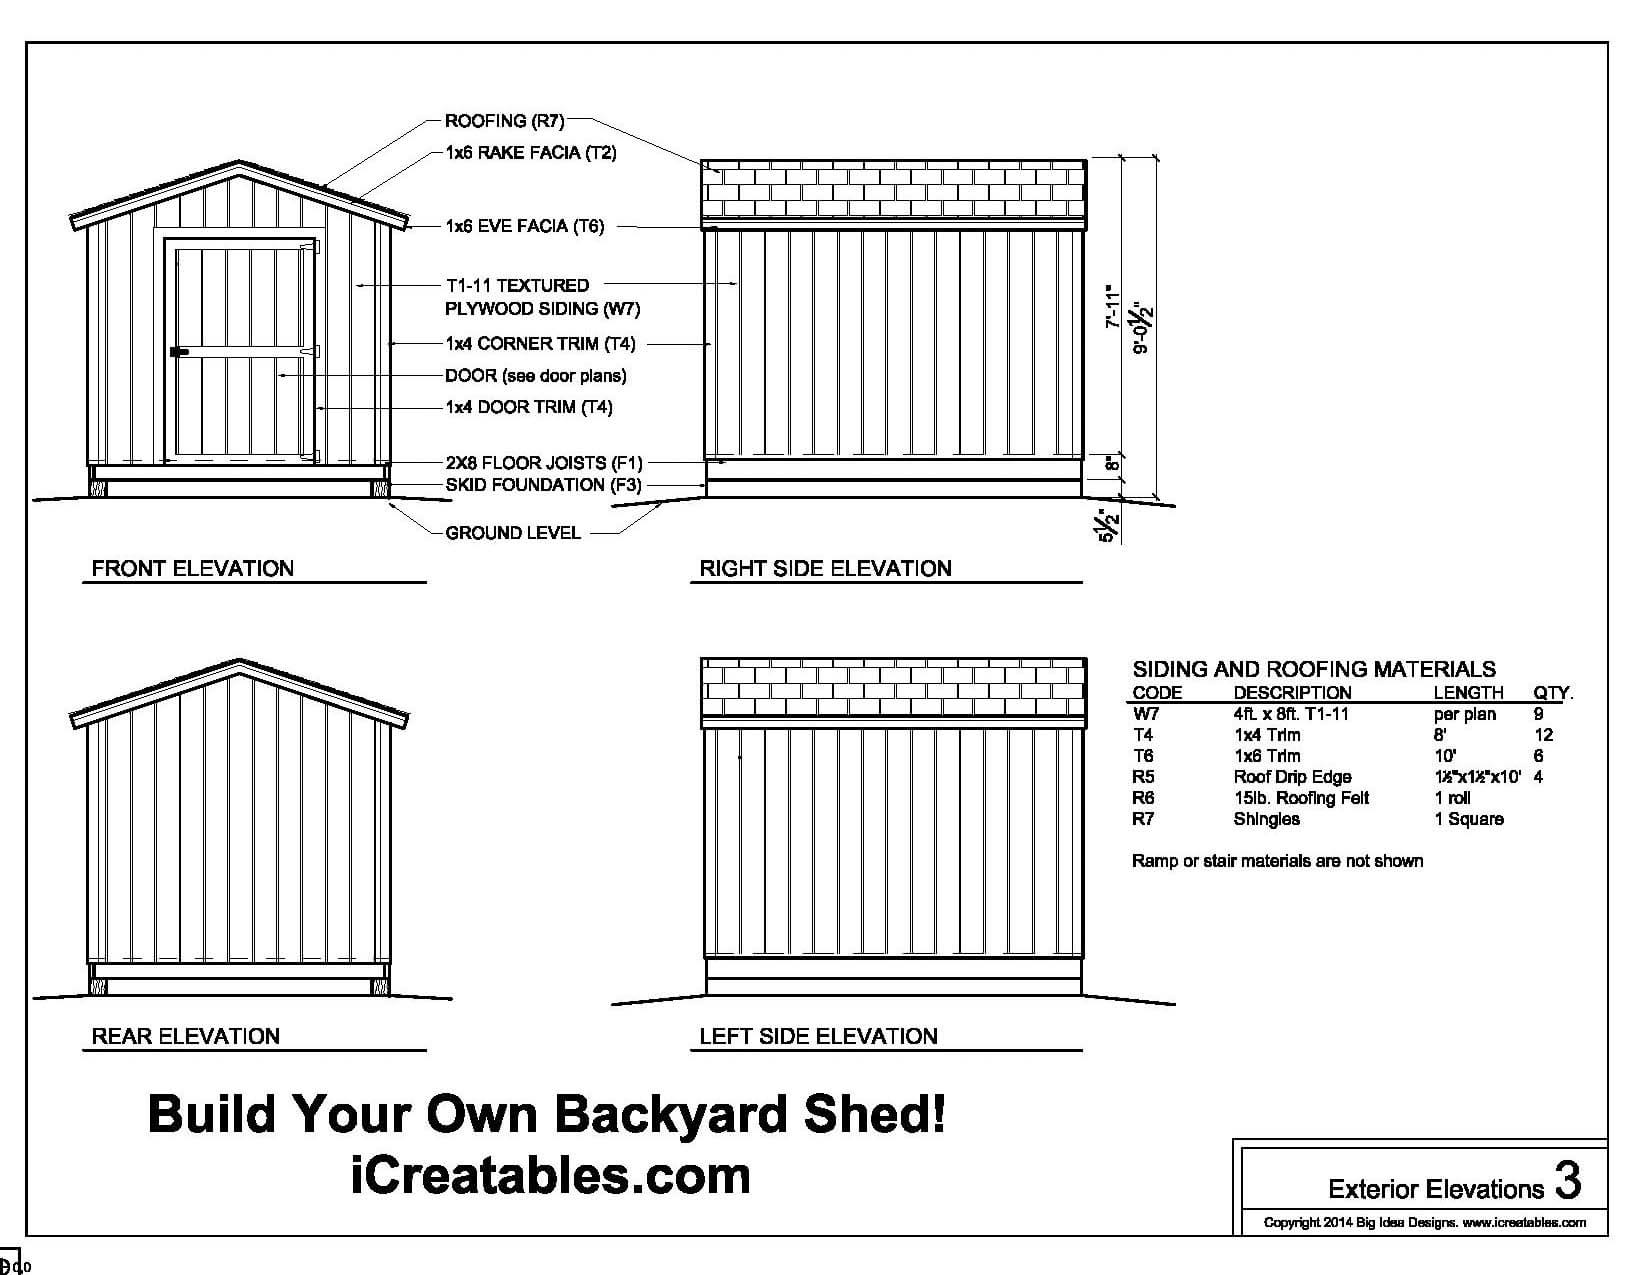 Nice shed plans and material list 6 8x10 g gable shed for Shed plans and material list